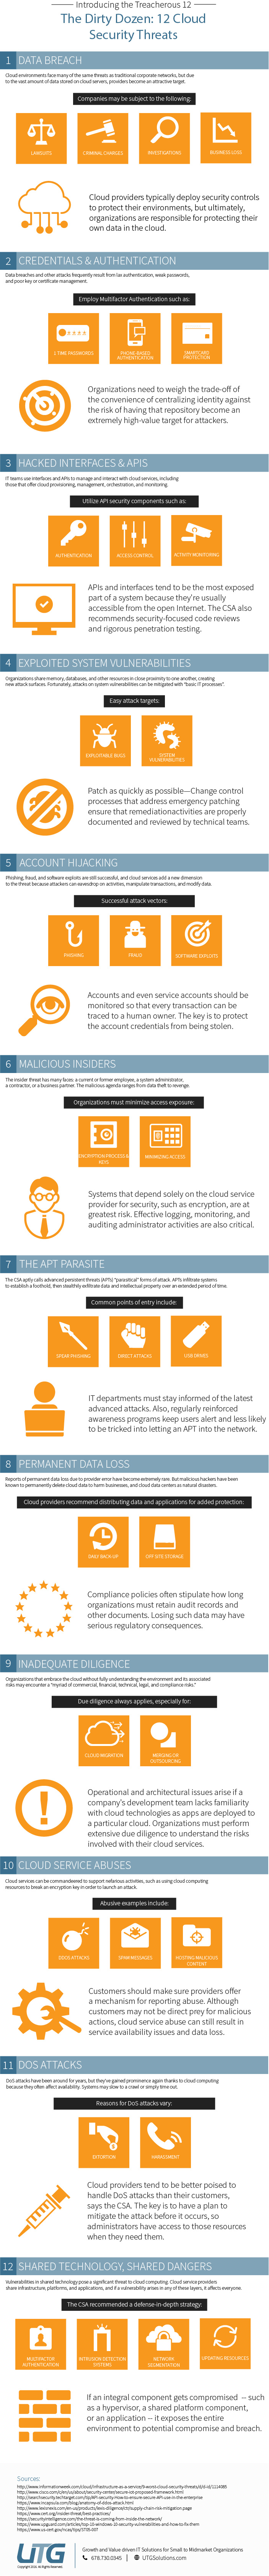 12 cloud security threats